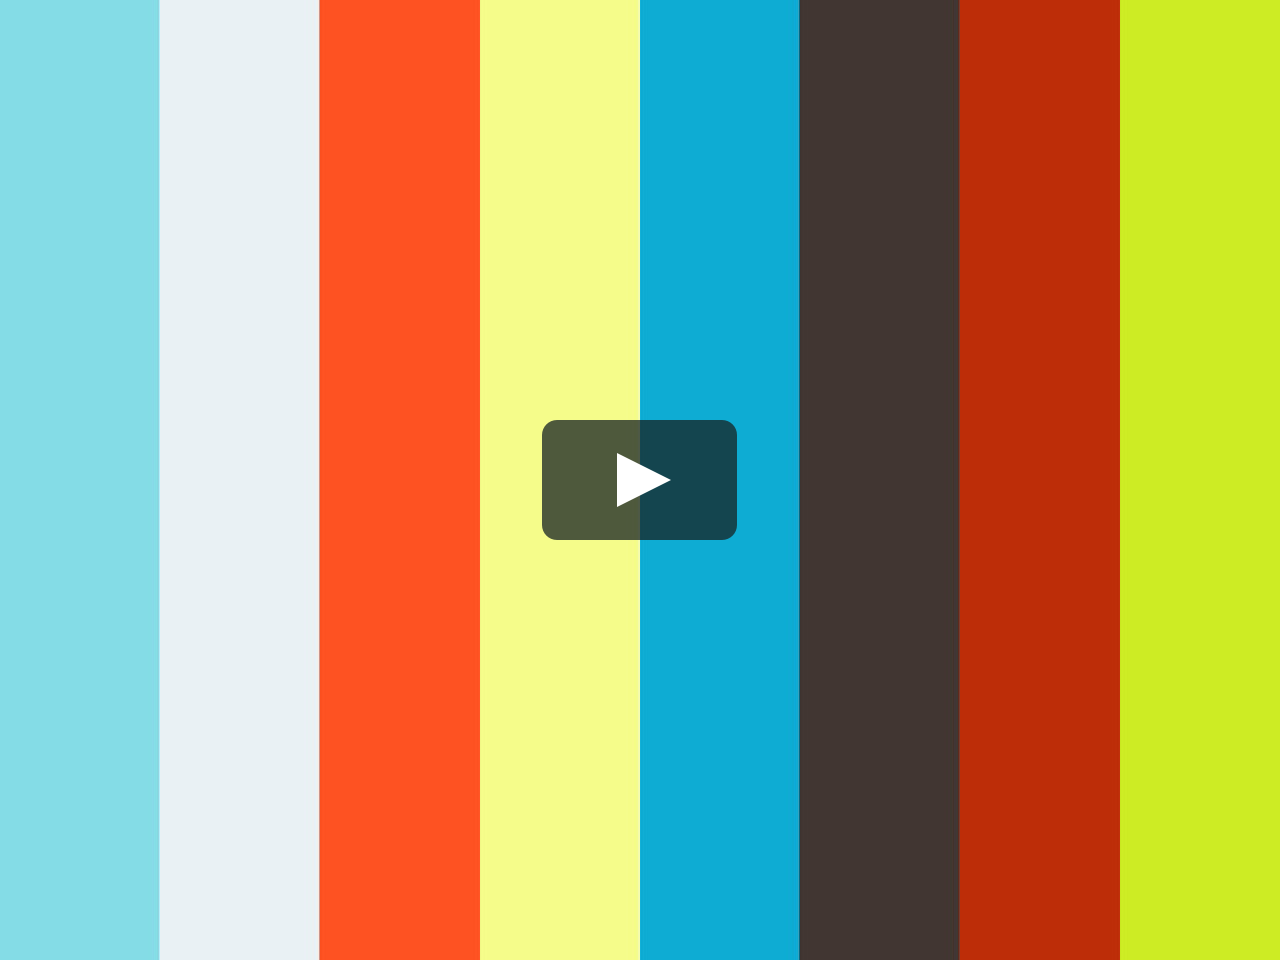 Greys Anatomy Season 13 Episode 23 S13e23 Full Online On Vimeo